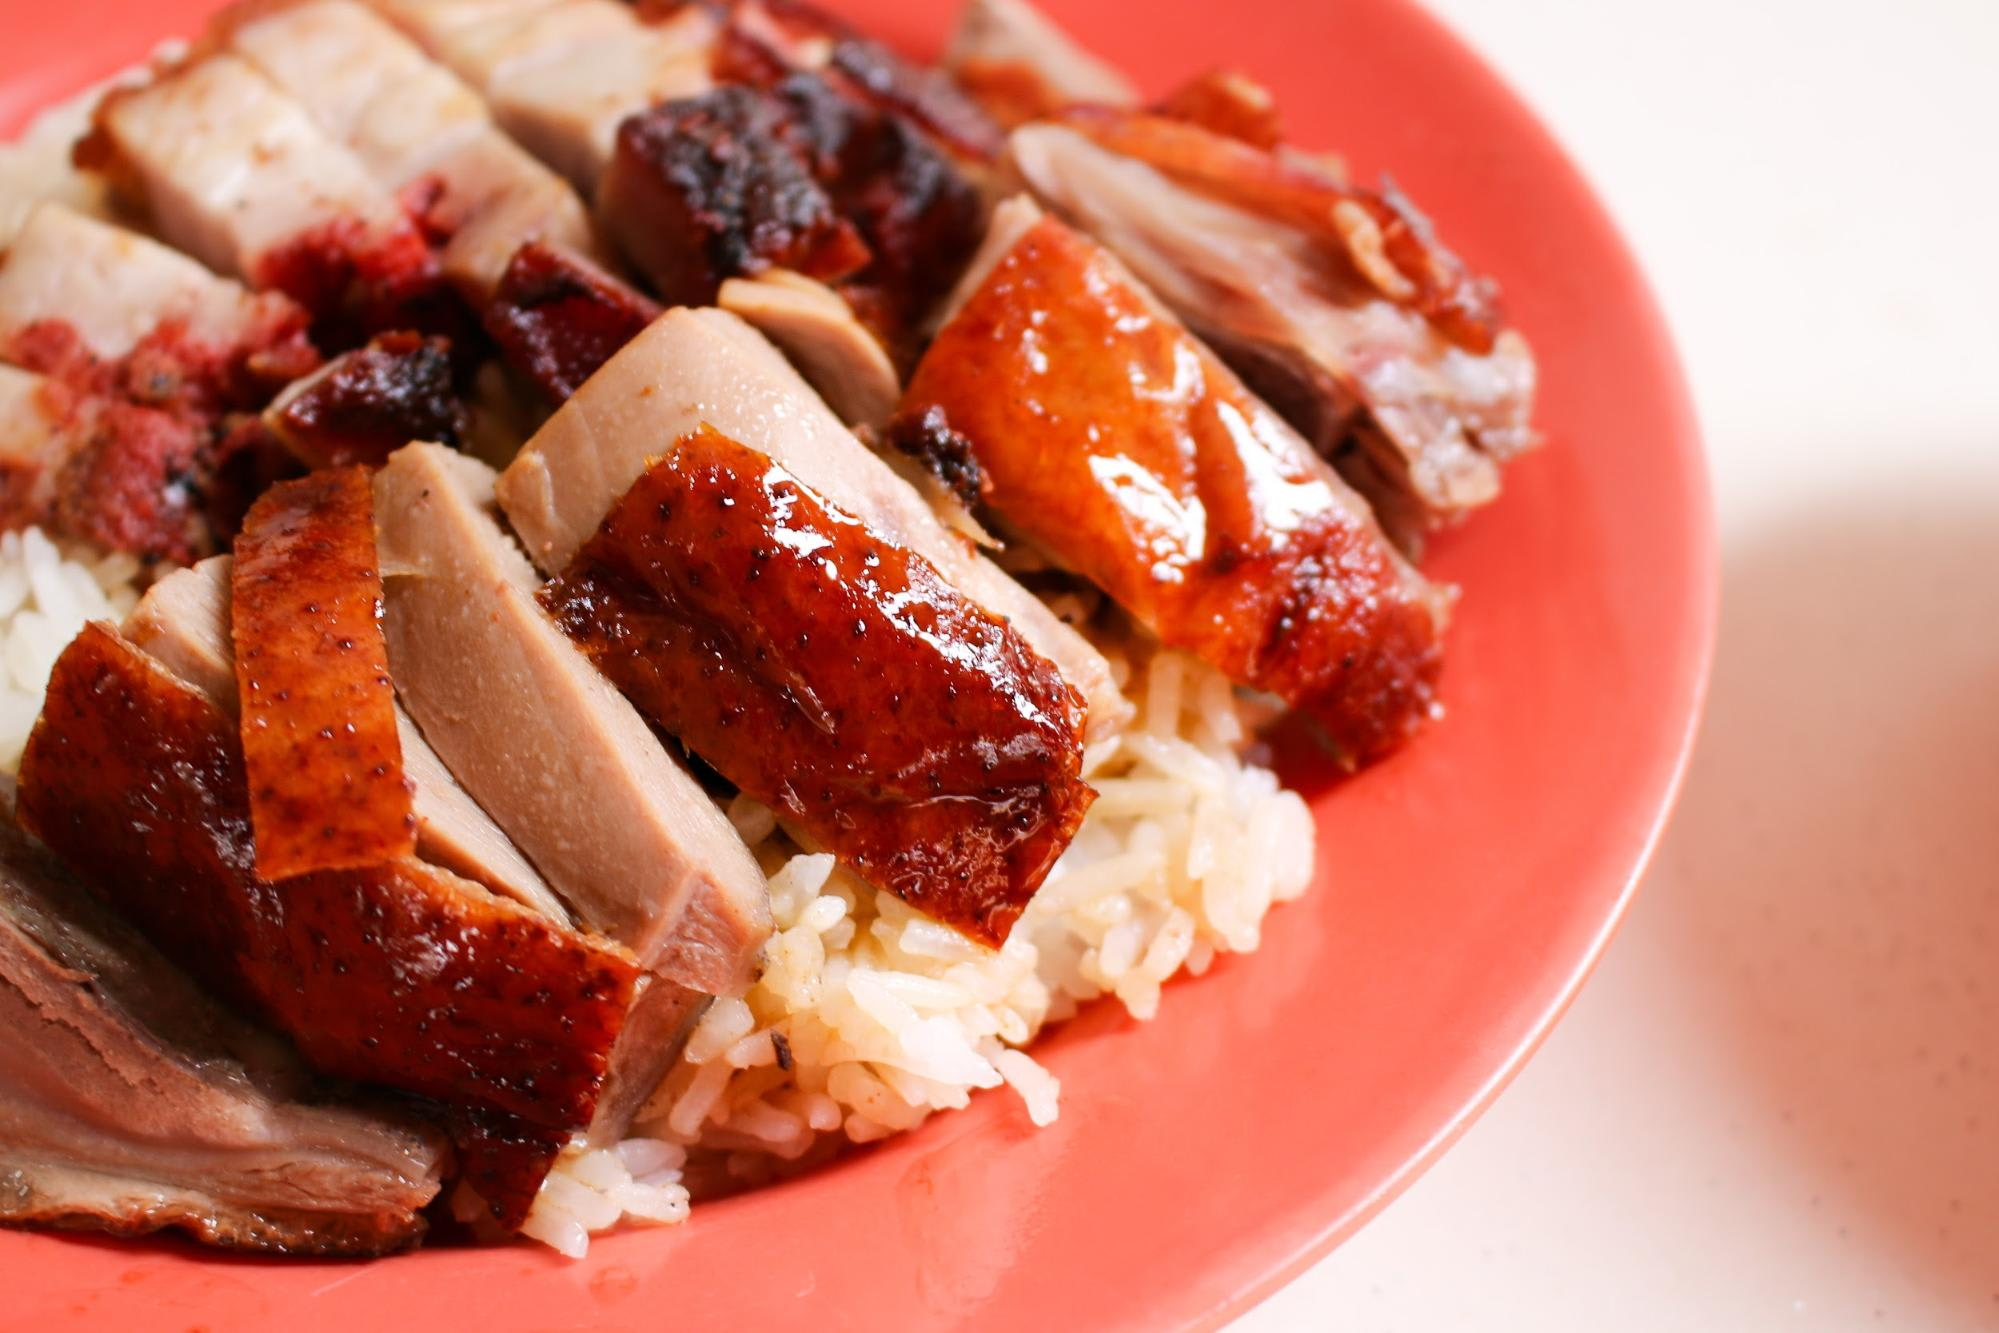 Foong Kee Coffee Shop Roast Meats